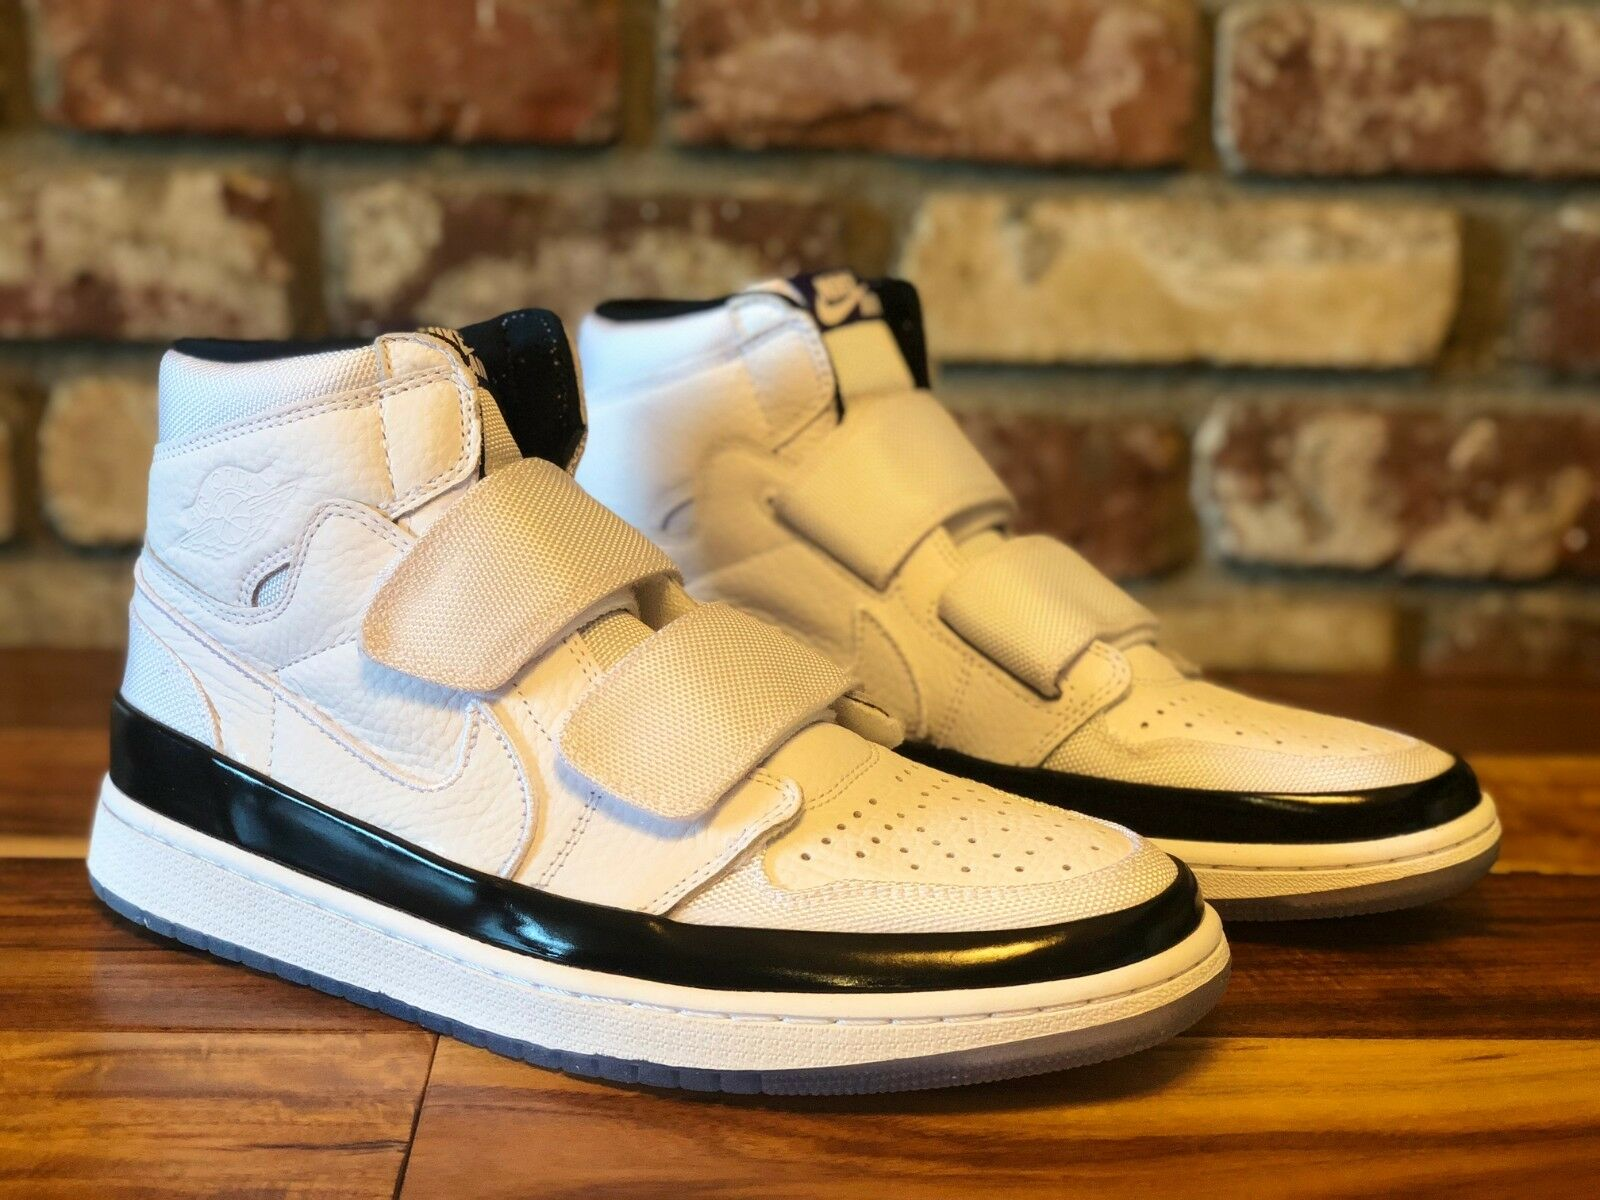 Nike Jordan 1 Retro High Double Strap Concord DS Men's Size 10 and 11.5